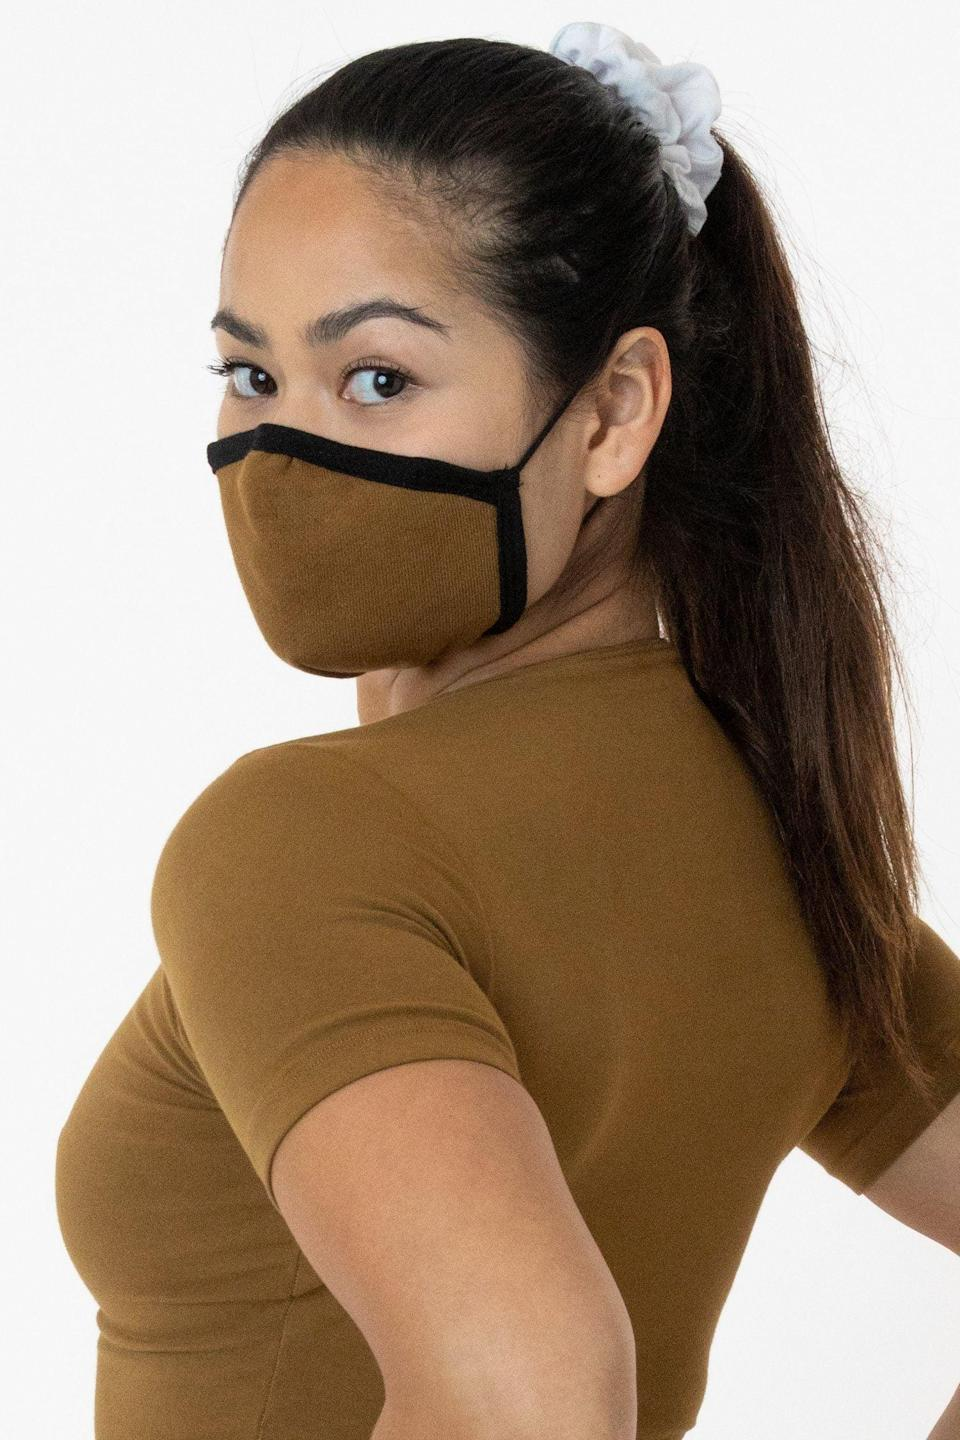 <p>The <span>Los Angeles Apparel Face Mask Pack</span> ($30) comes in one size with three mask, and proceeds help the company continue to donate the face masks they're creating to those in need. You'll find 22 different color options on the brand's site, though many might already be sold out. Unique features include an adjustable nose that forms to your face, as well as adjustable straps for comfort.</p>